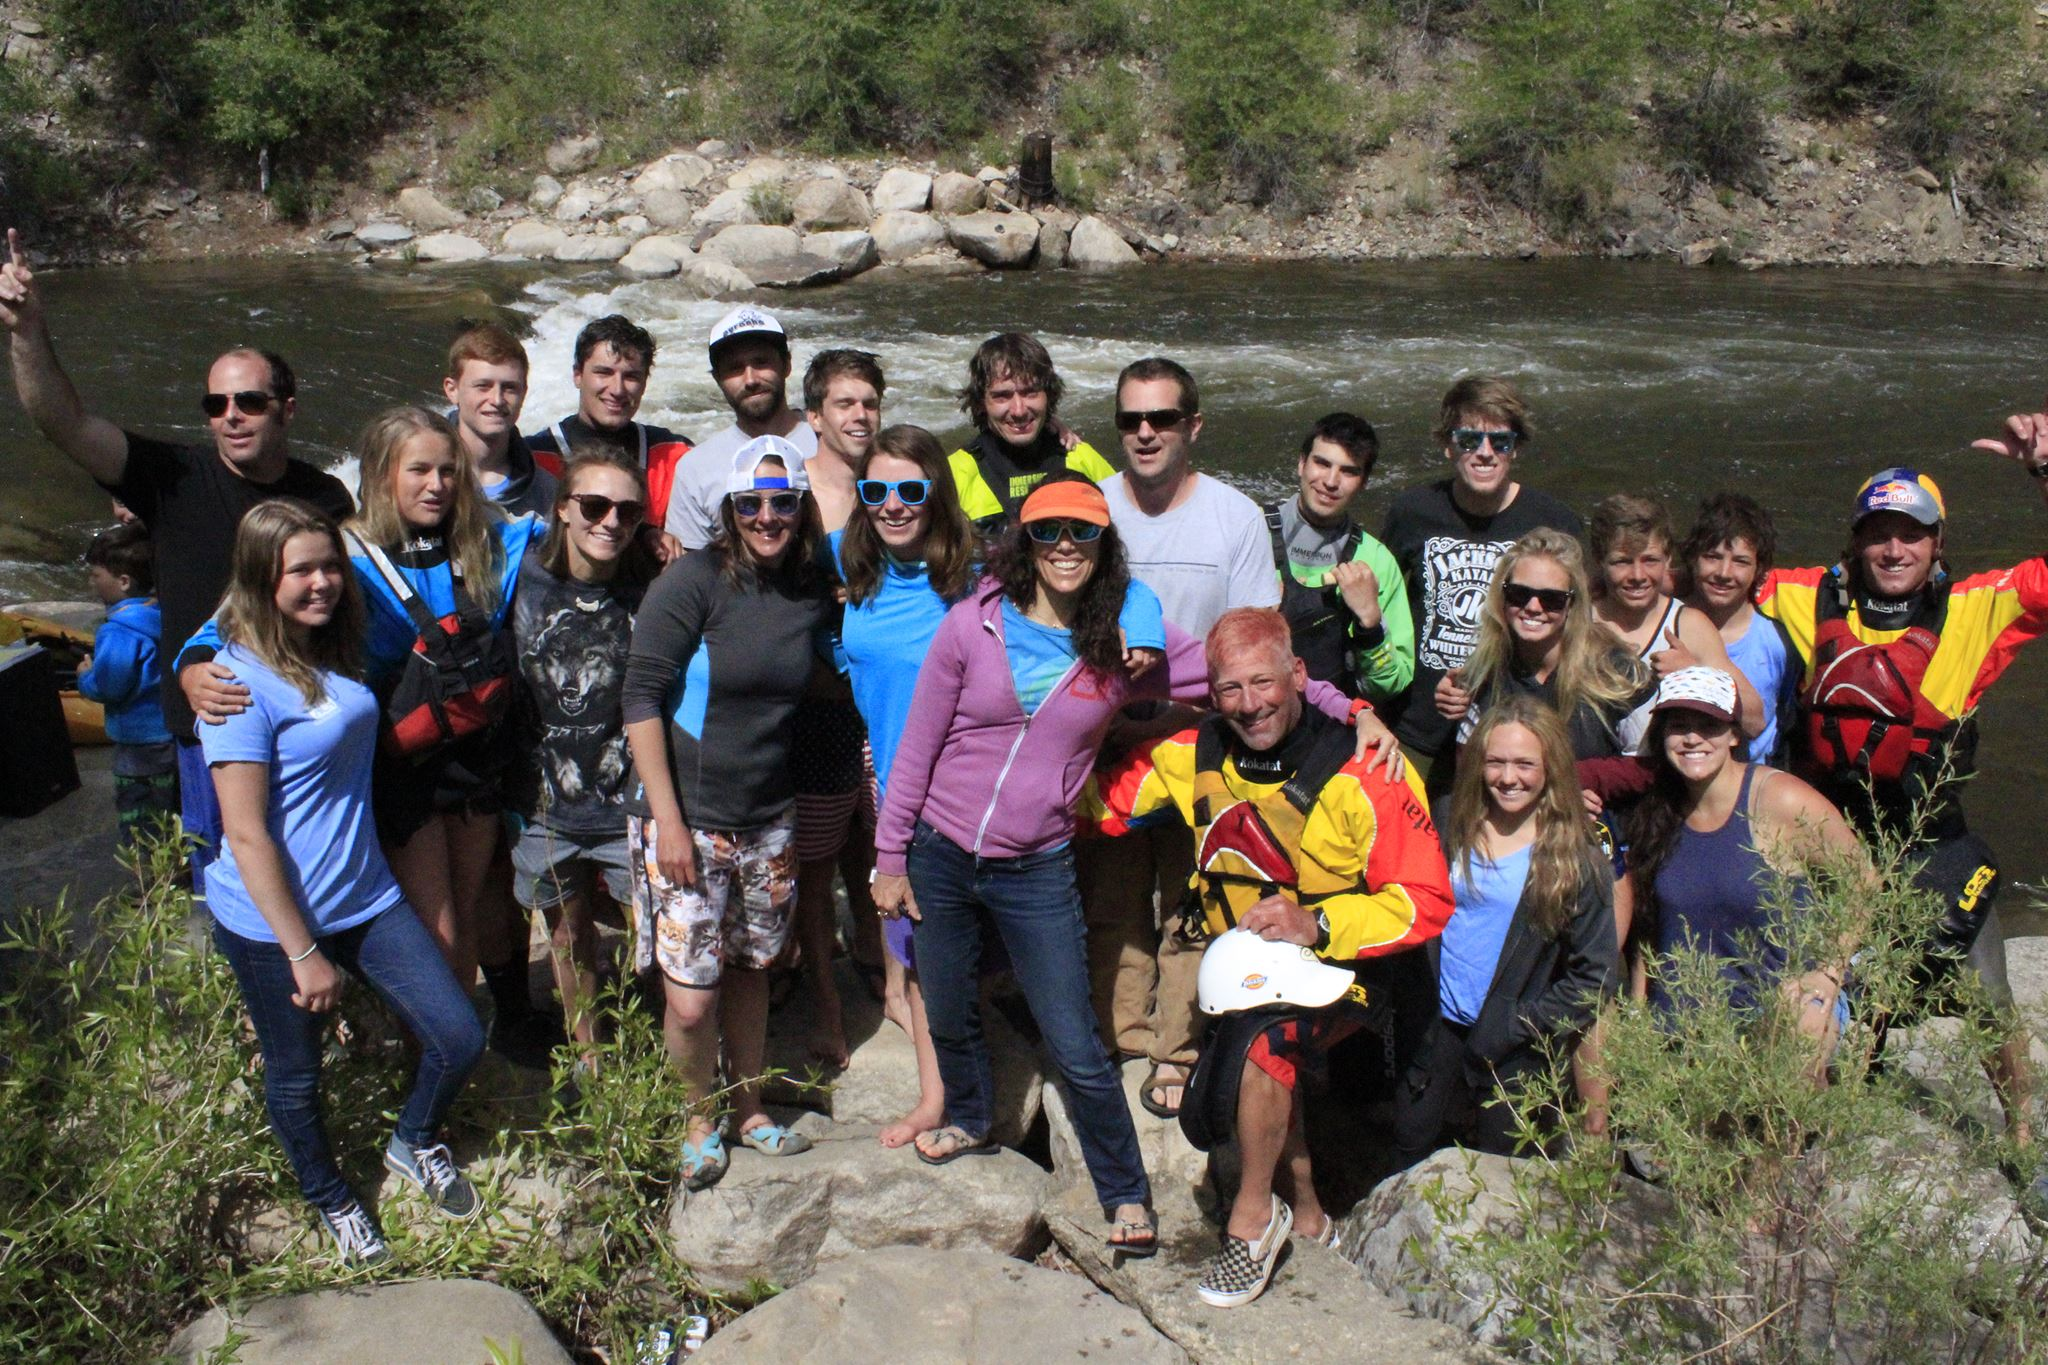 U.S. Team chosen in Buena Vista, Colorado - May 30-31, 2017. Thank you, South Main and Jed Selby for hosting us,  Wavemonkey for your awesome scoring system and our many volunteers!